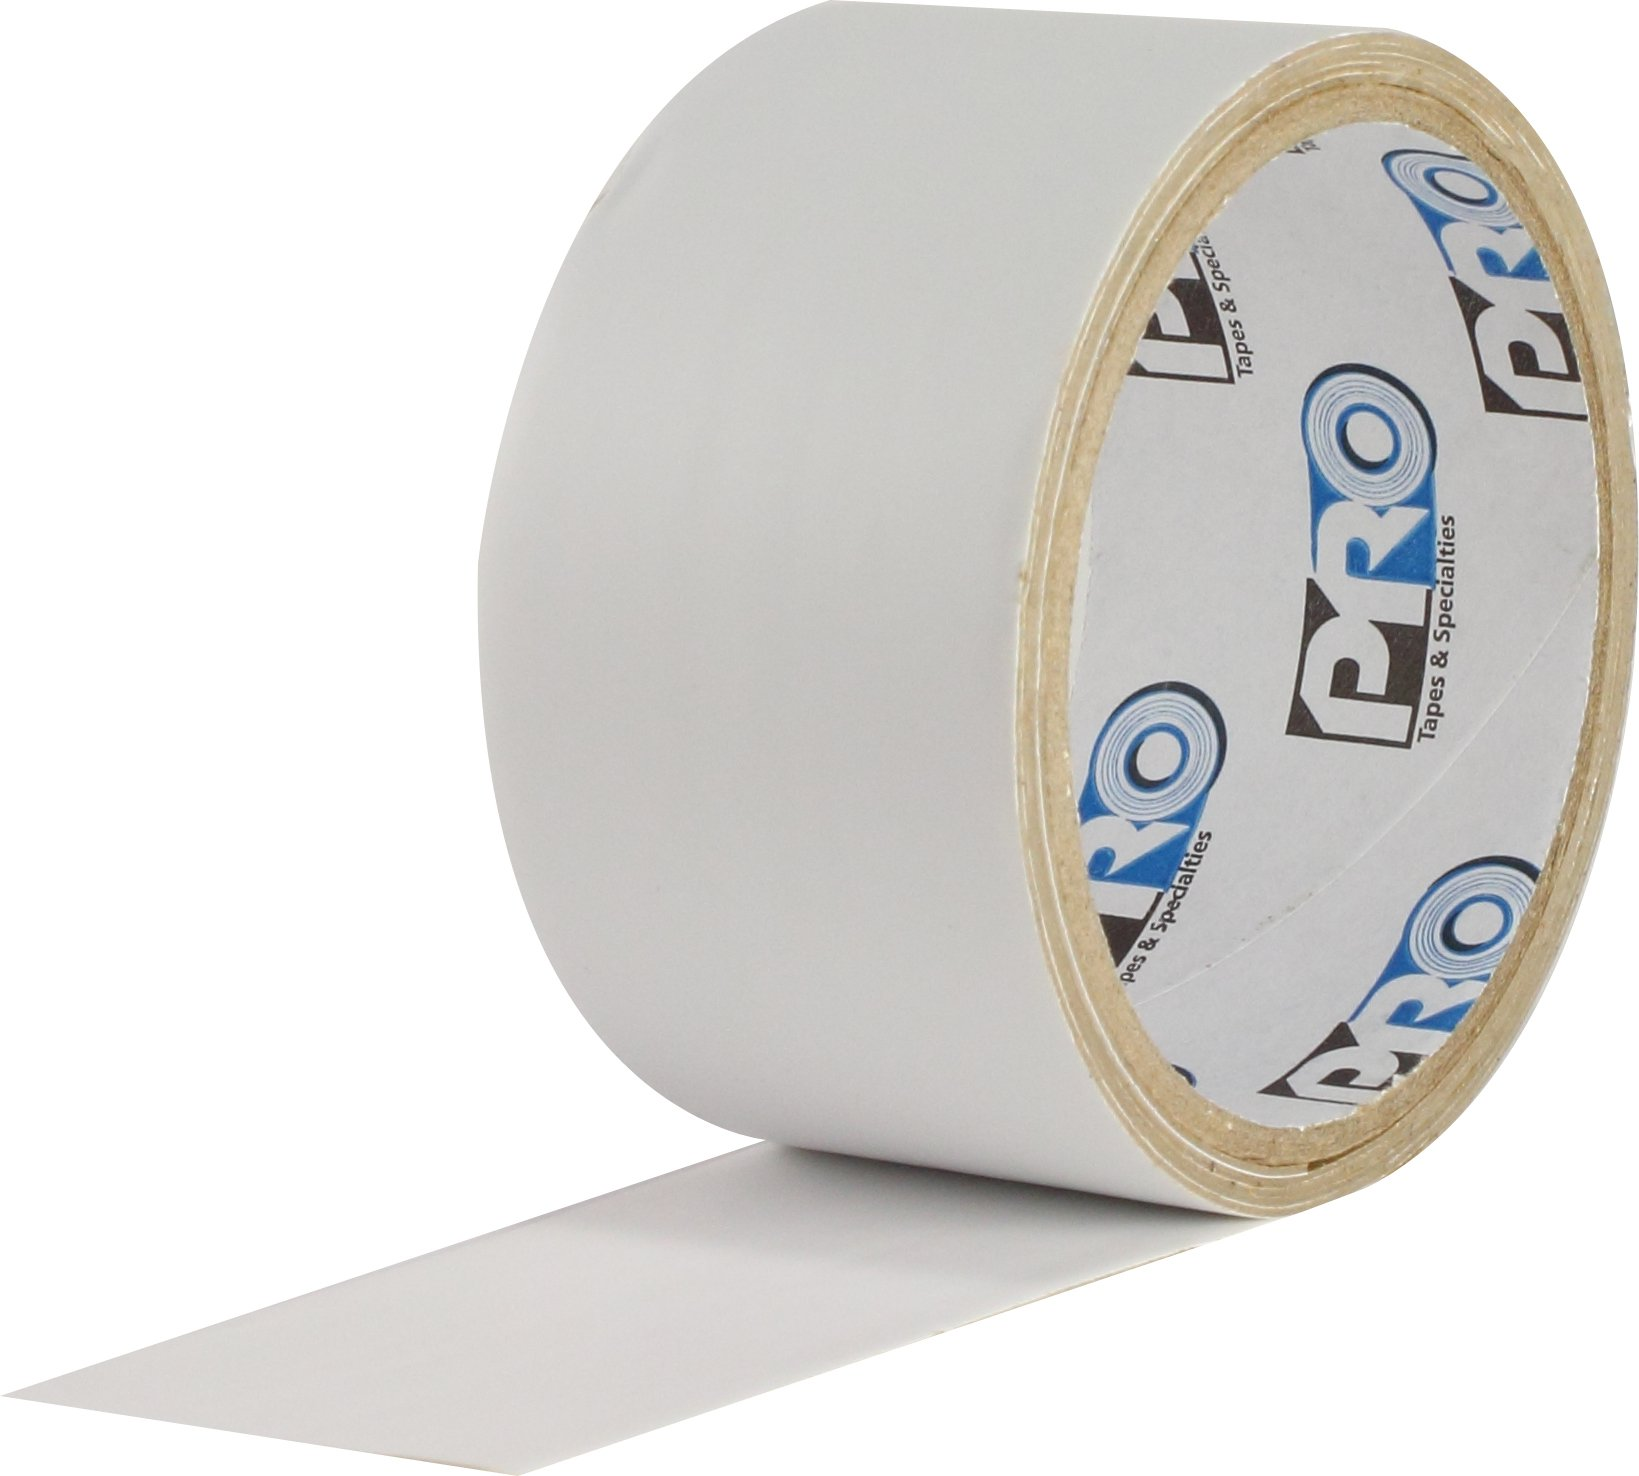 ProTapes Pro Flex Flexible Butyl All Weather Patch and Shield Repair Tape, 50' Length x 6'' Width, White (Pack of 1)